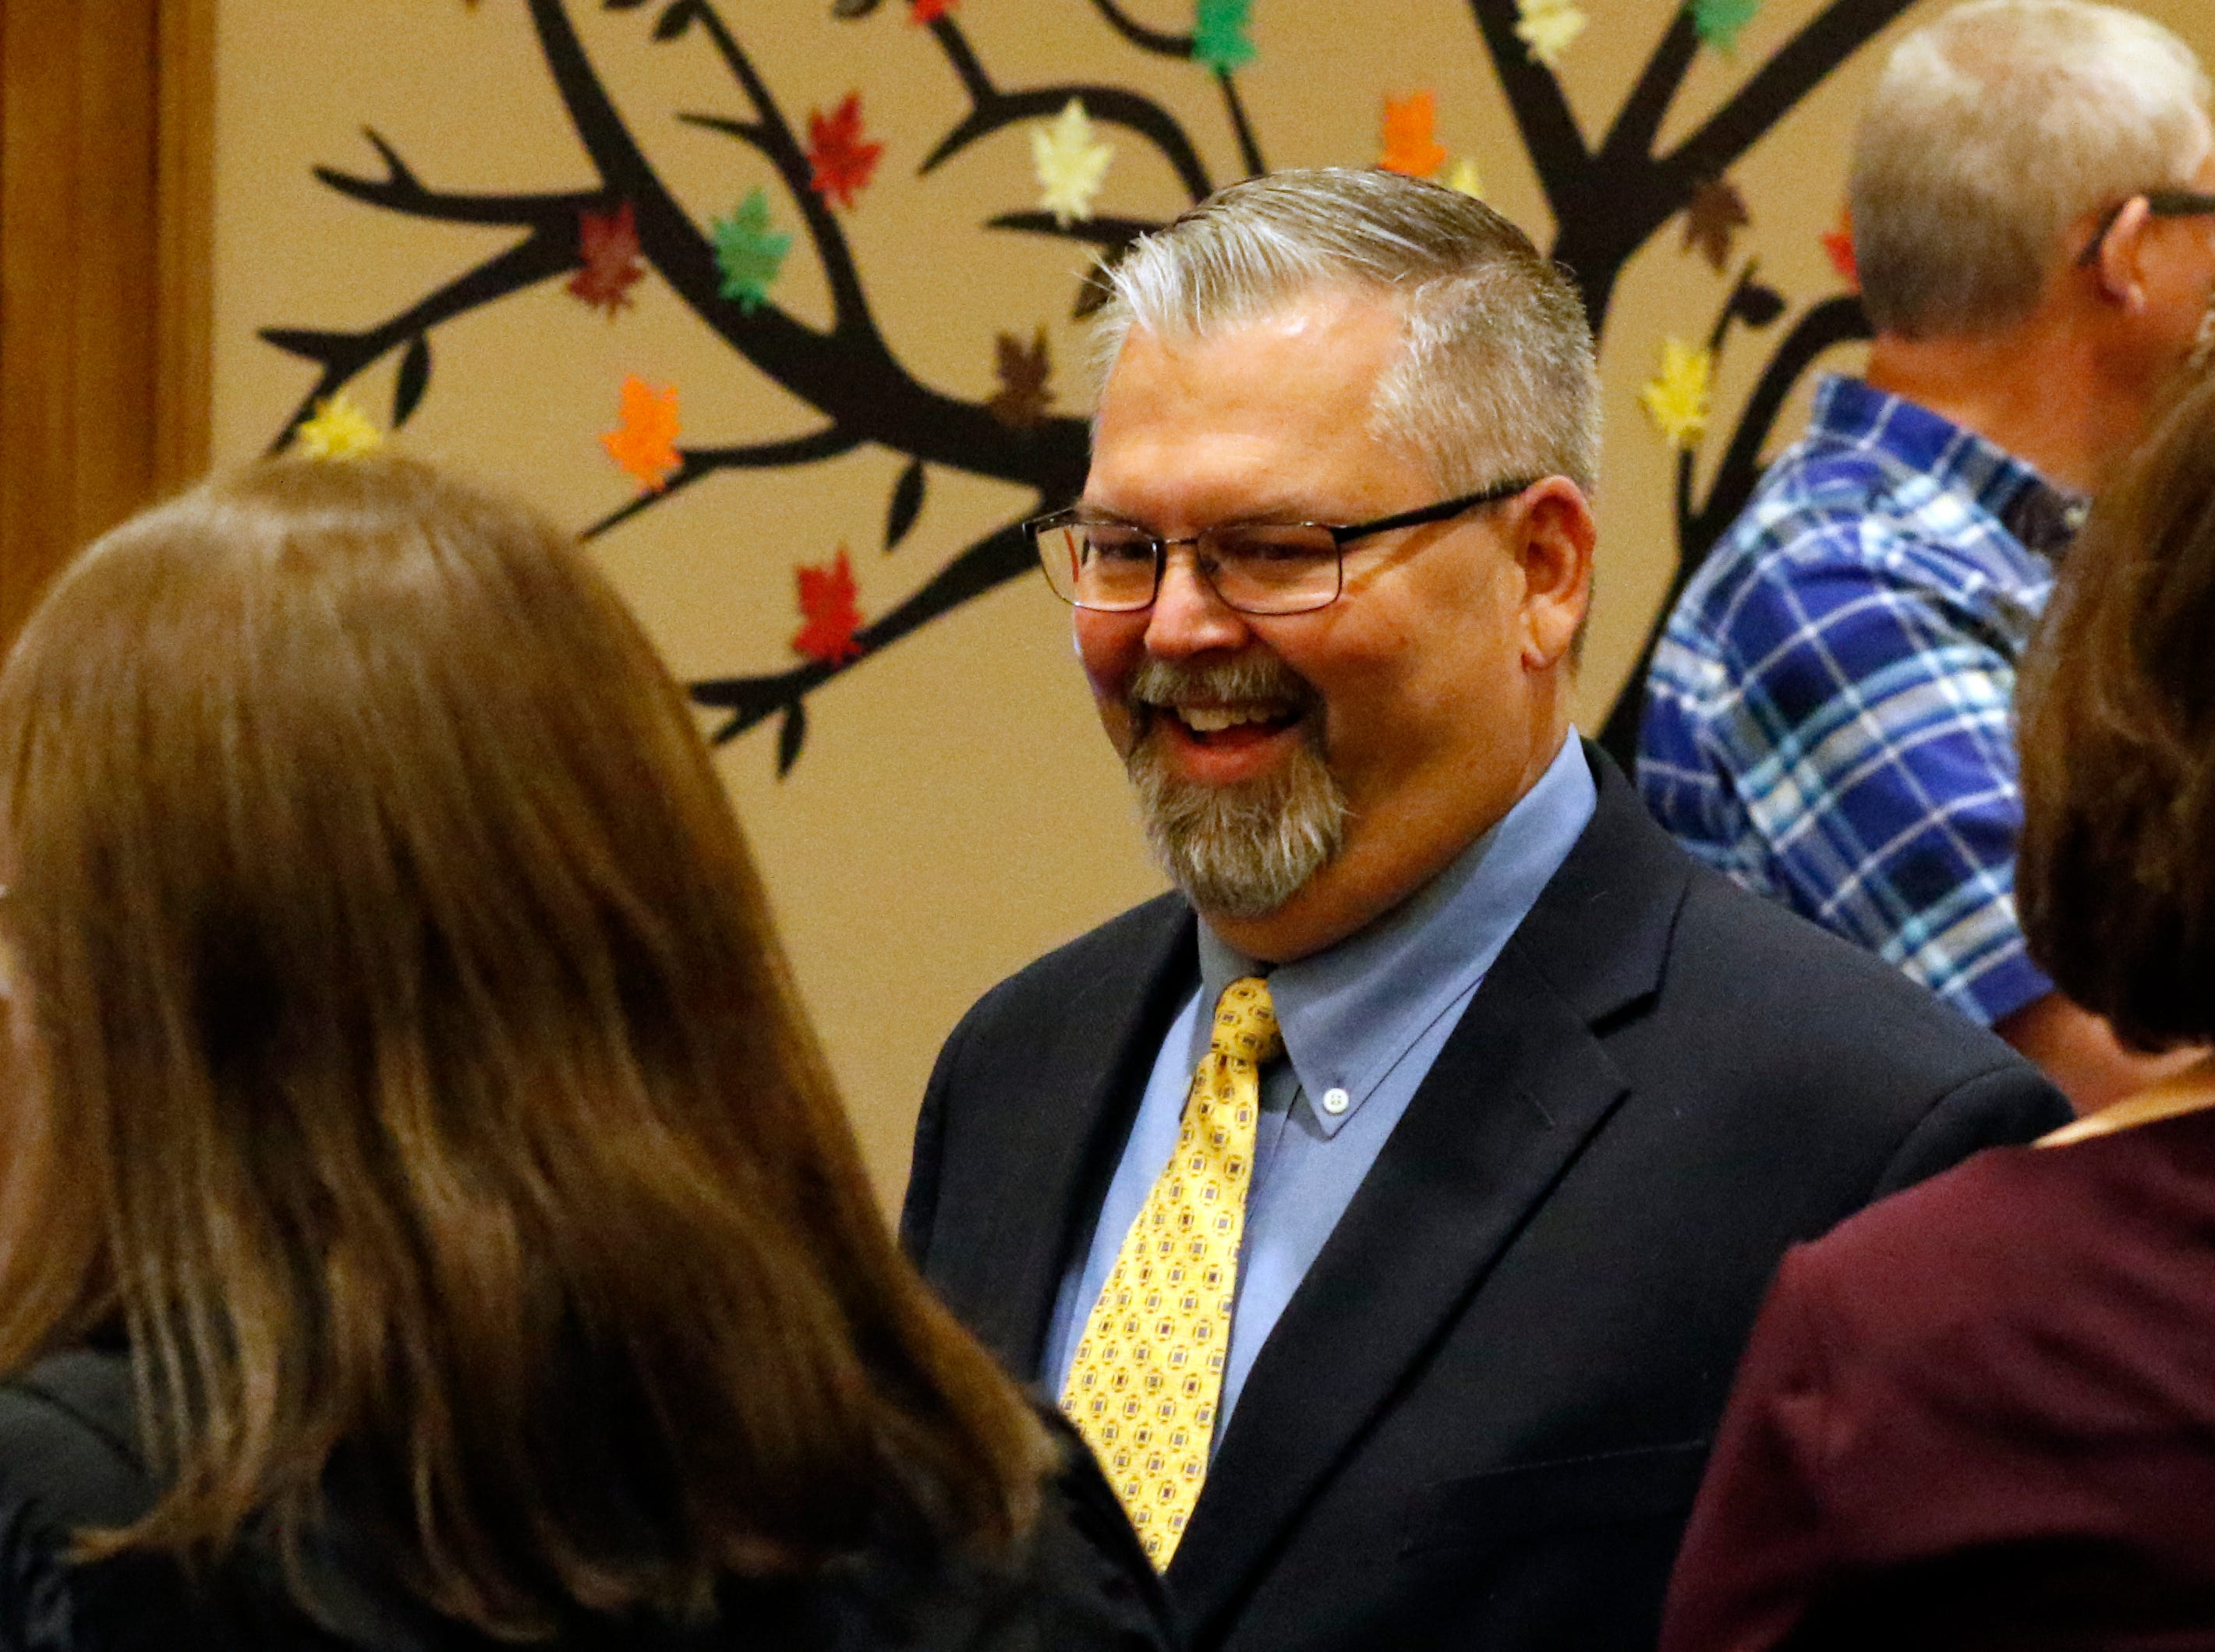 Fairfield County Commissioner-elect Jeff Fix talks with people in the commissioner's hearing room after being sworn in Tuesday morning, Dec. 11, 2018, in Lancaster. Fix will take office in January.